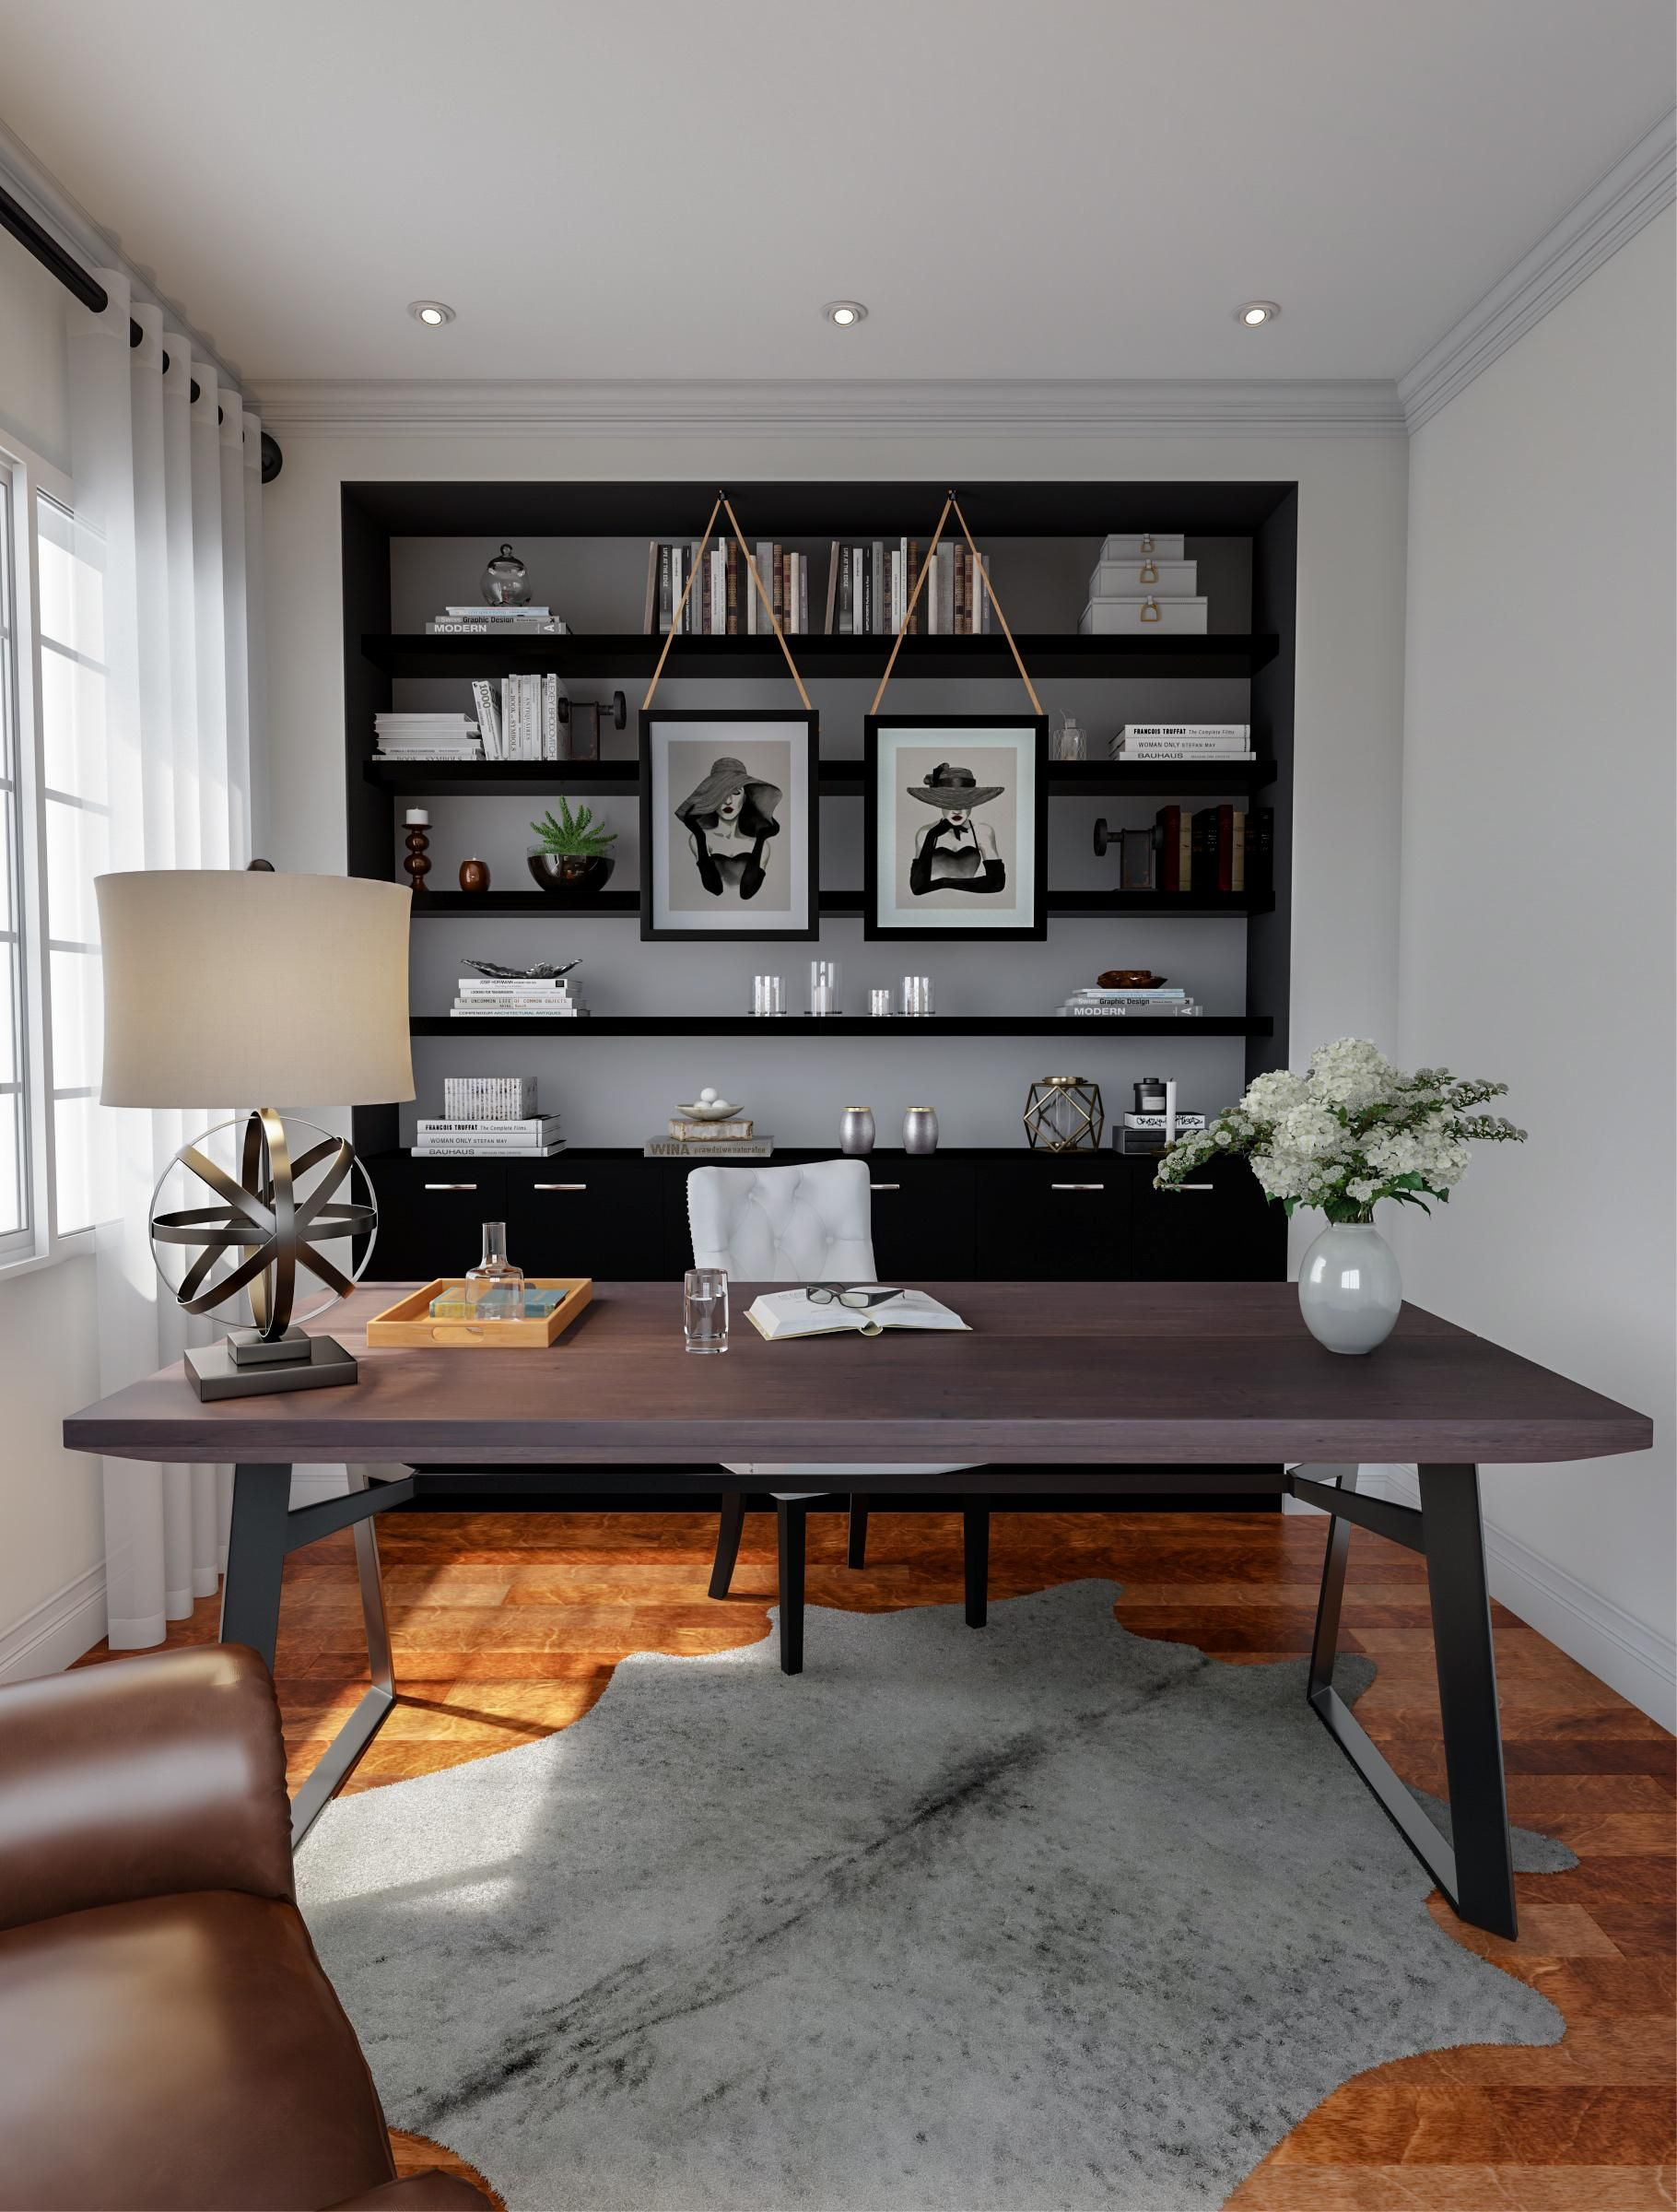 Best layout designs to give your home office  makeover storage built ins shelving person desk also dream images in bathroom bed room bedrooms rh pinterest